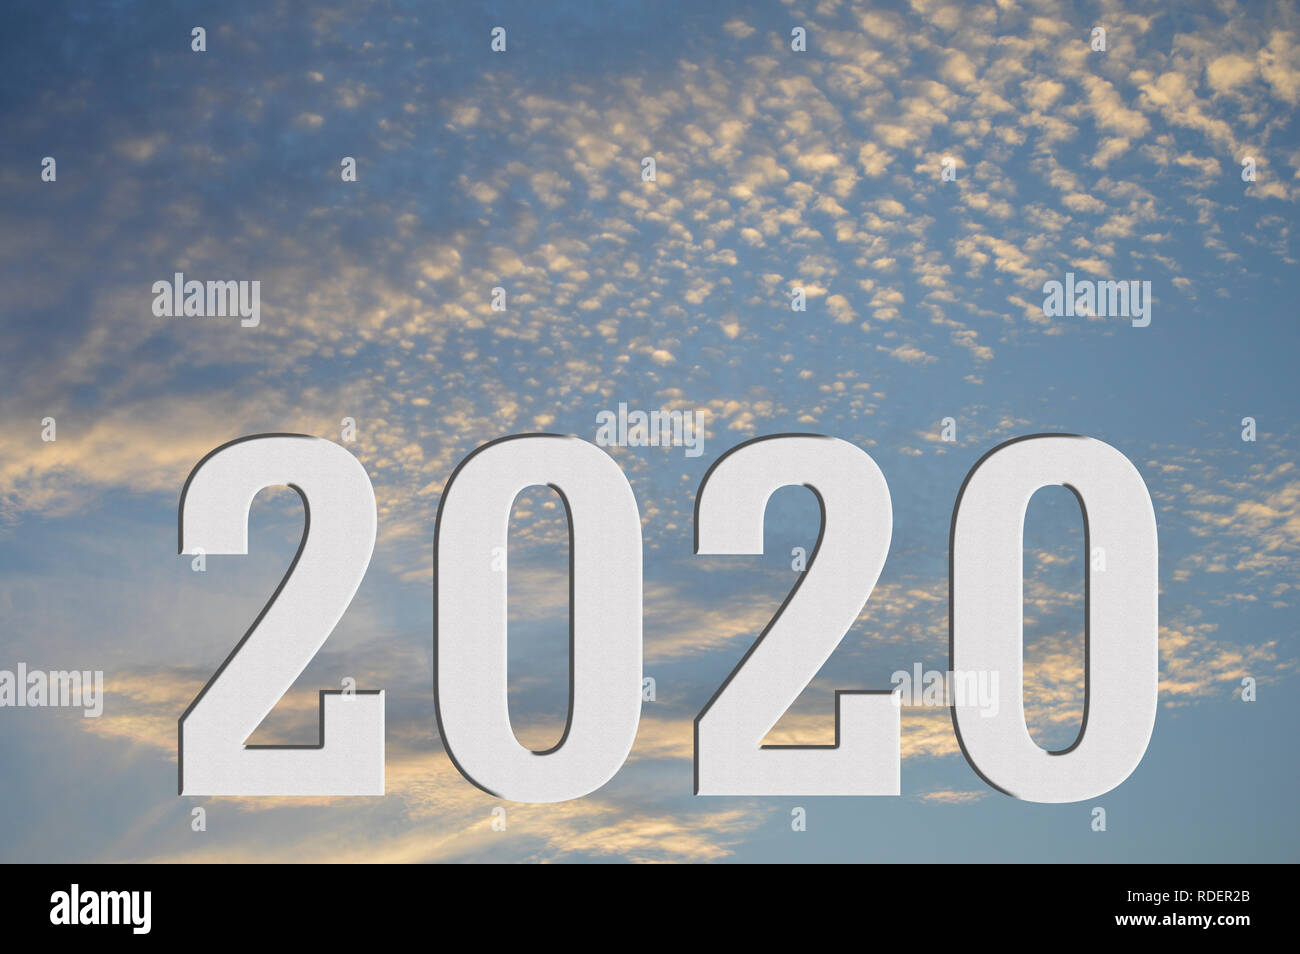 A visual of the year 2020 sitting under a sunset or sunrise, showing the sun has set on 2020 or the sun is rising on 2020 - Stock Image